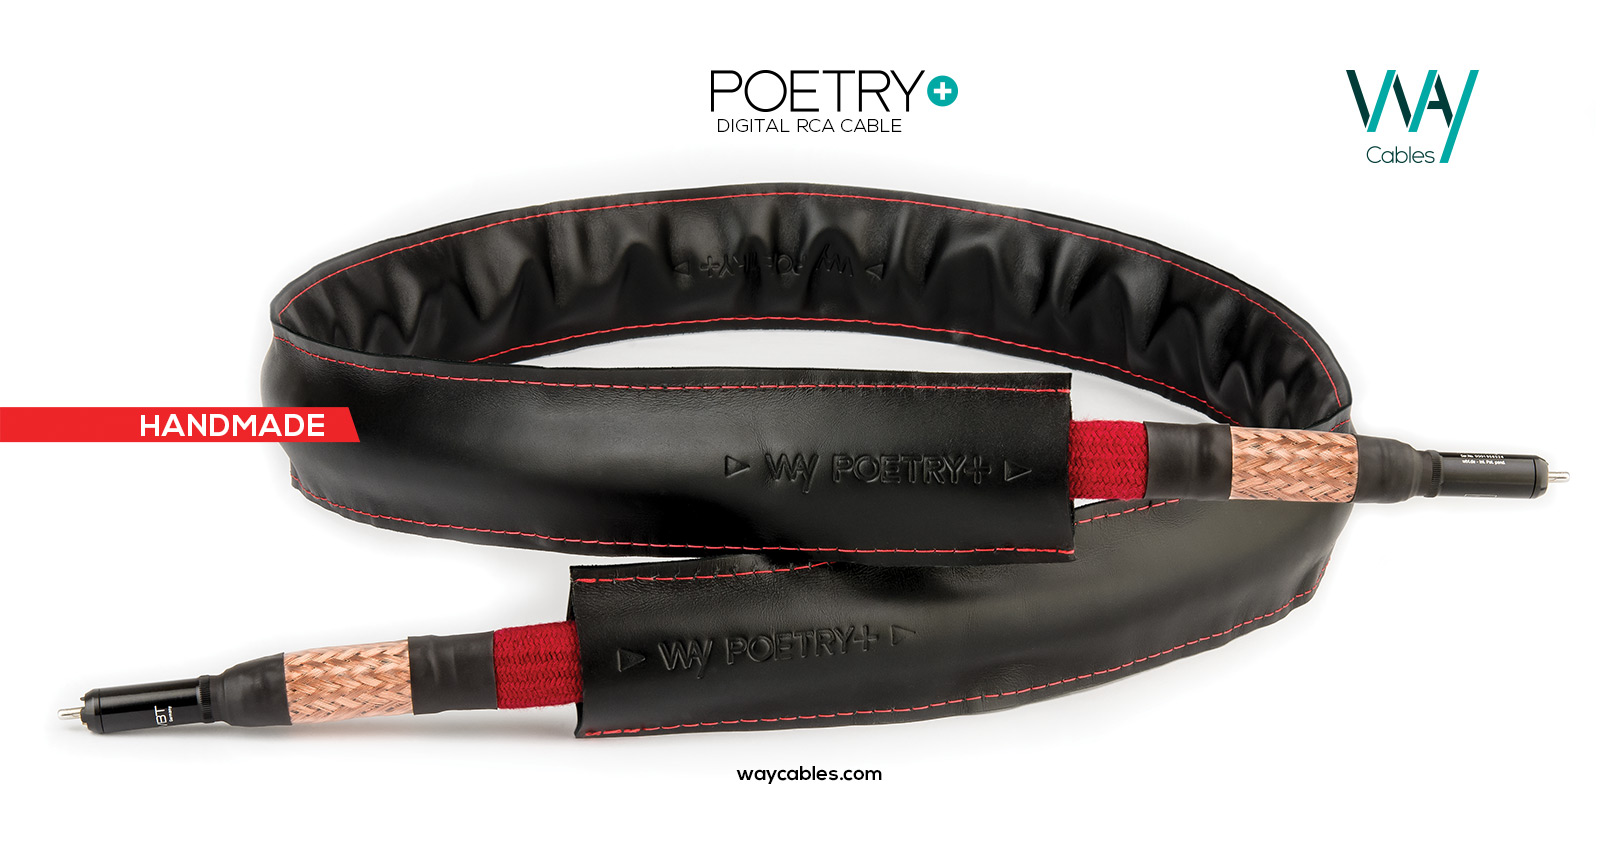 WAY_Cables_DC_Poetry